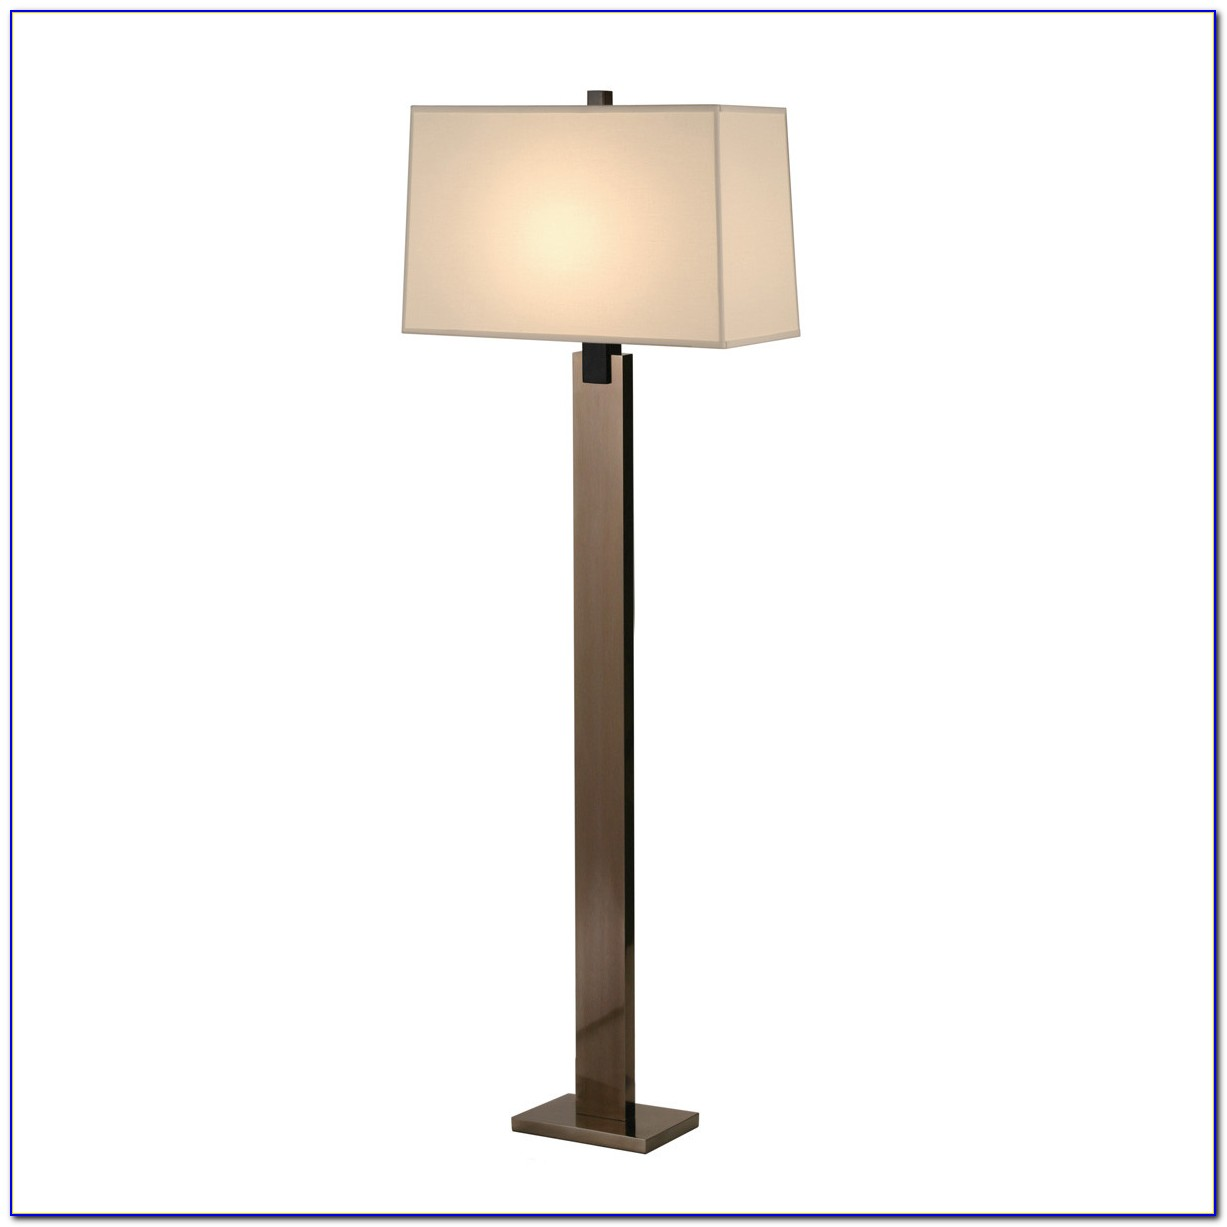 Floor Lamp With Dimmer Uk